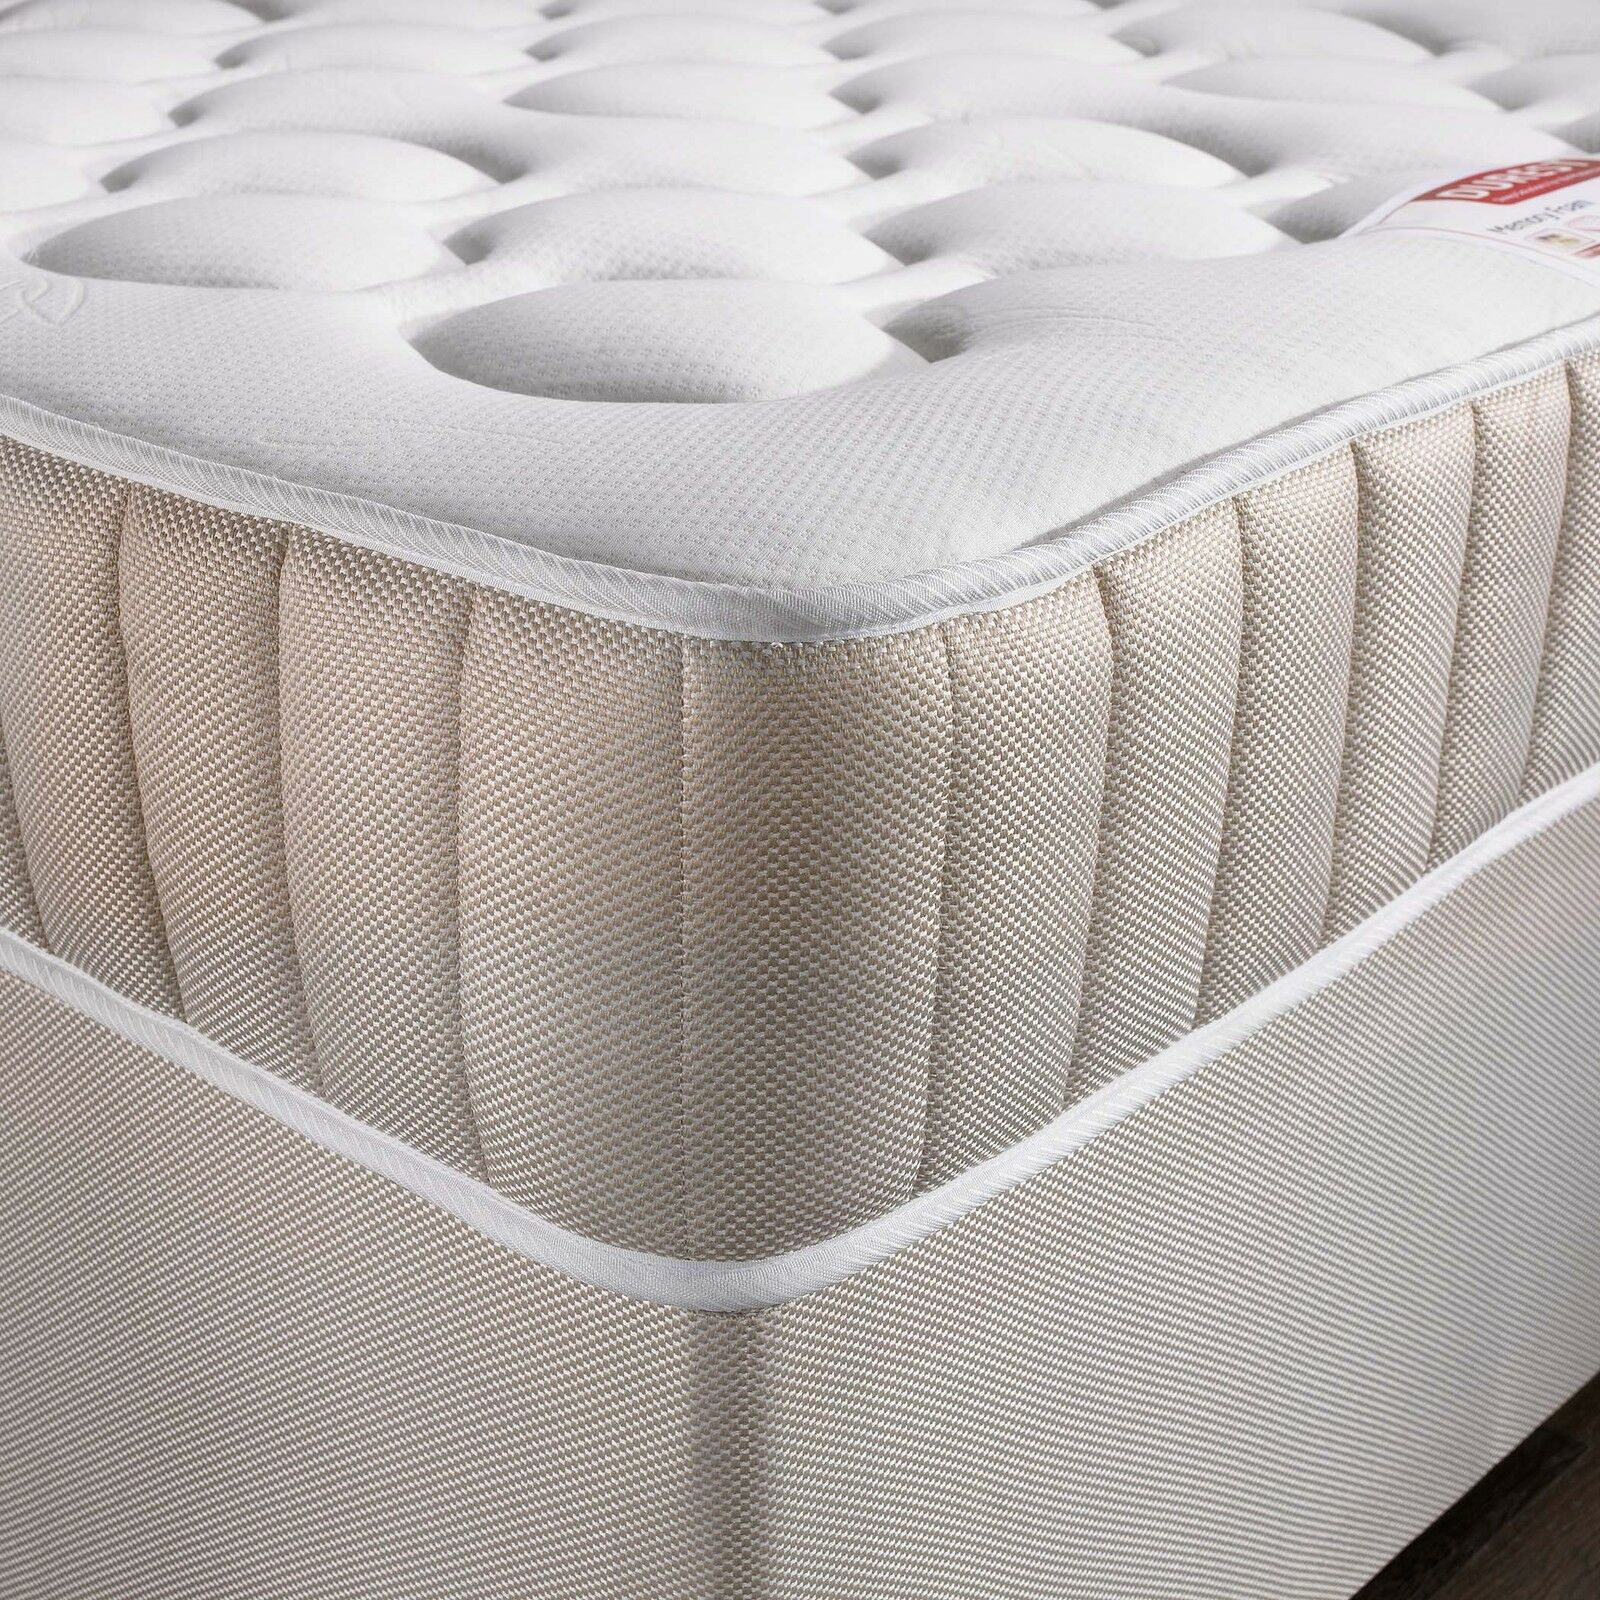 Single Mattress Free Delivery 10 Quot Memory Foam Pocket Sprung Mattress Nextday Delivery Ebay